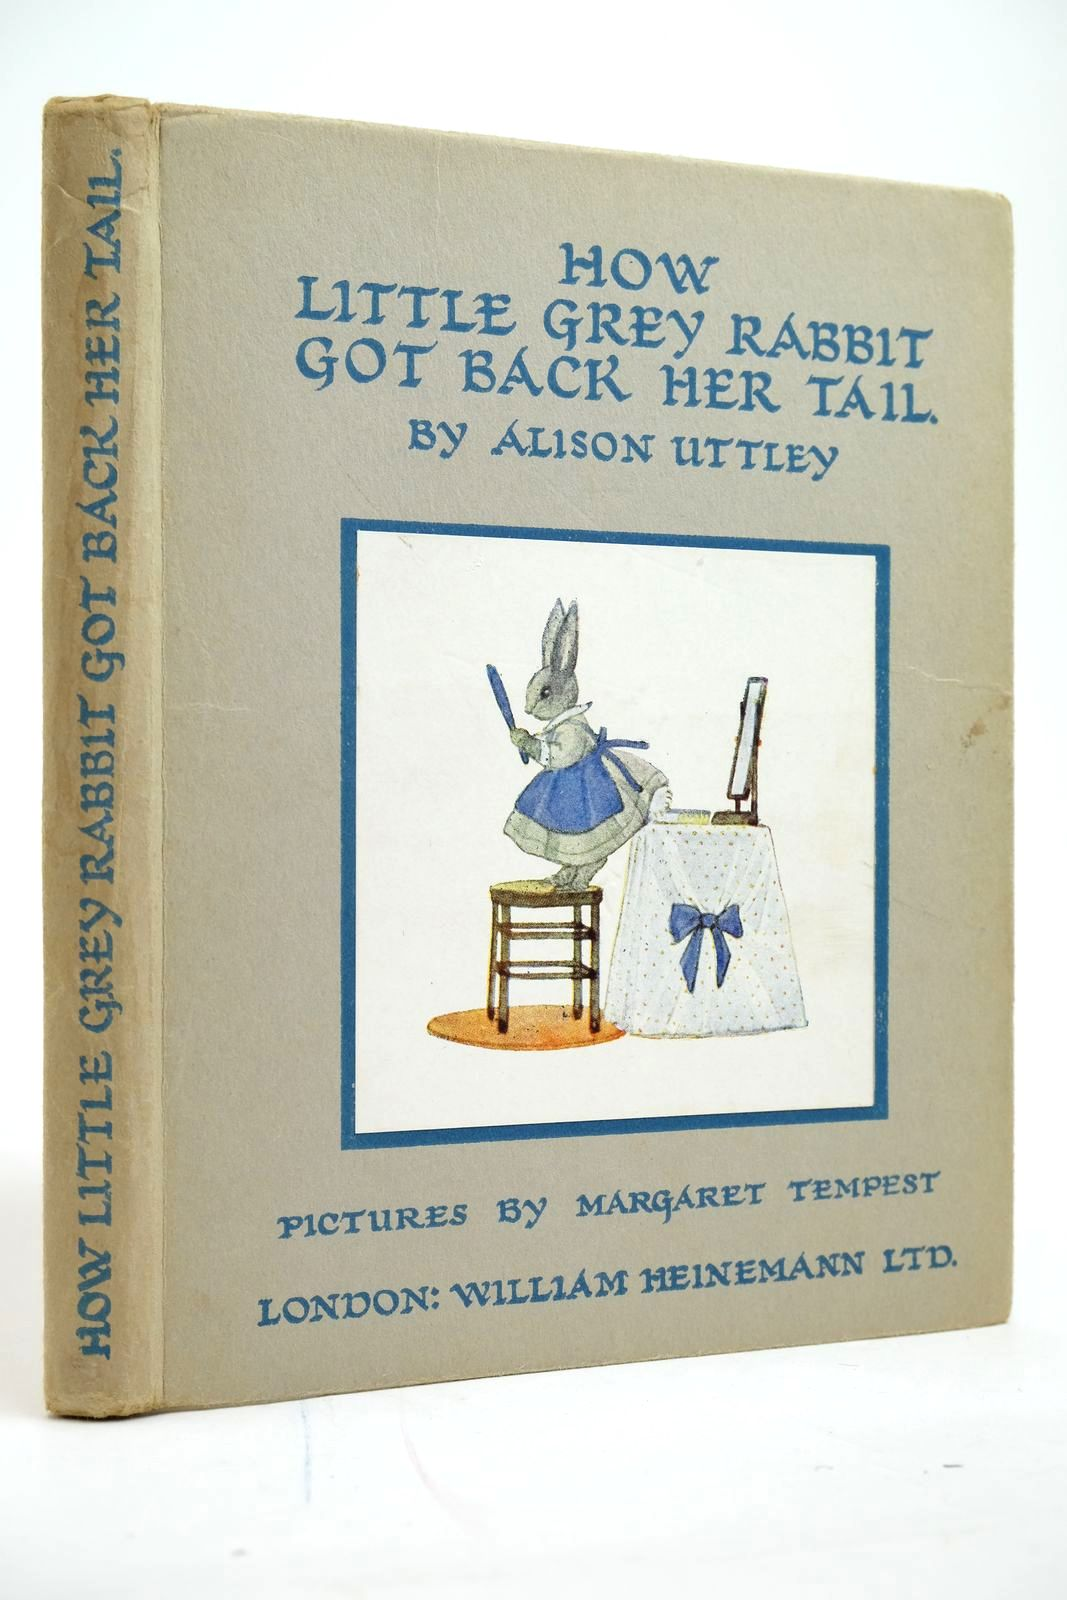 Photo of HOW LITTLE GREY RABBIT GOT BACK HER TAIL written by Uttley, Alison illustrated by Tempest, Margaret published by William Heinemann Ltd. (STOCK CODE: 2135092)  for sale by Stella & Rose's Books